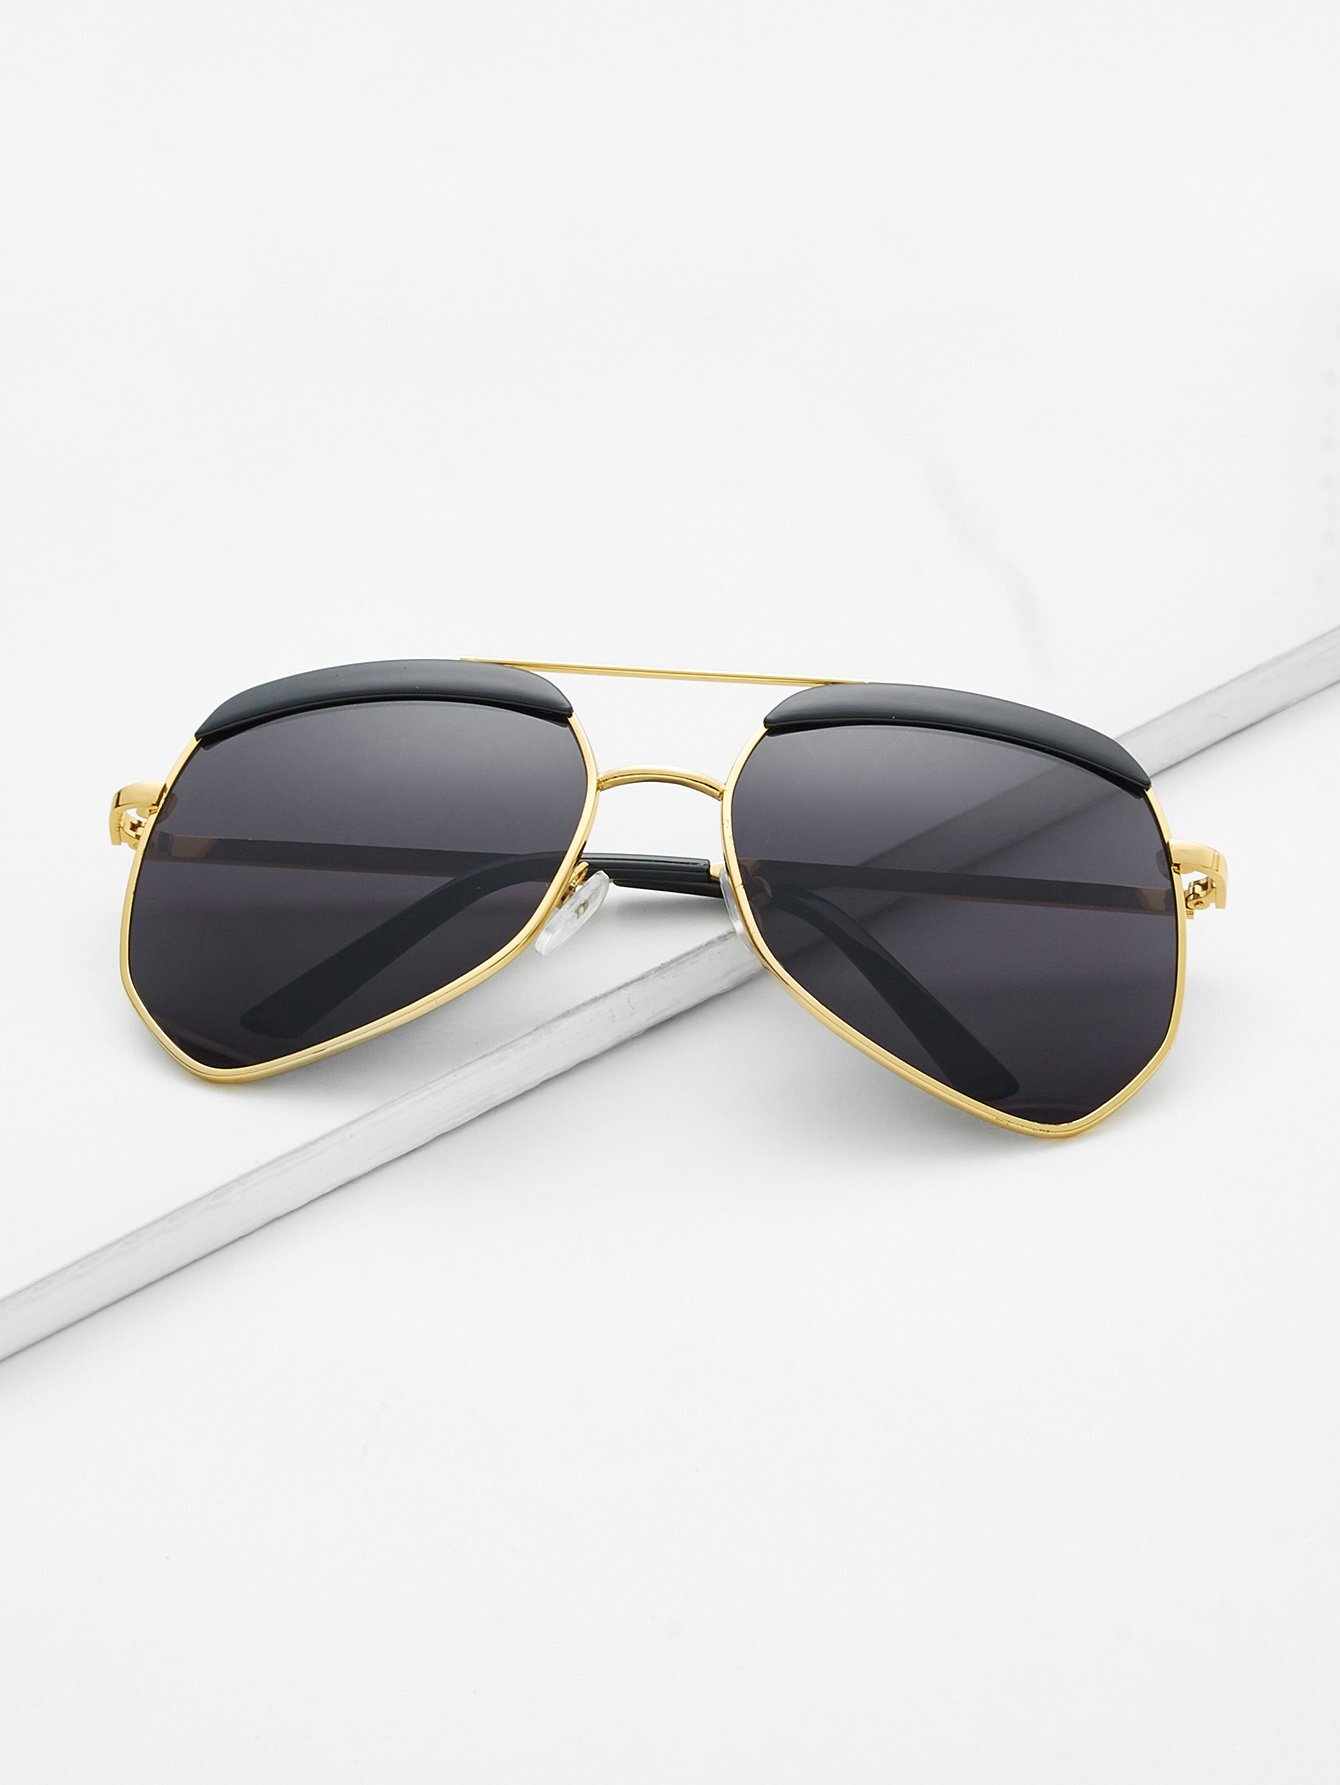 Gold Frame Double Bridge Black Lens Sunglasses black bridge